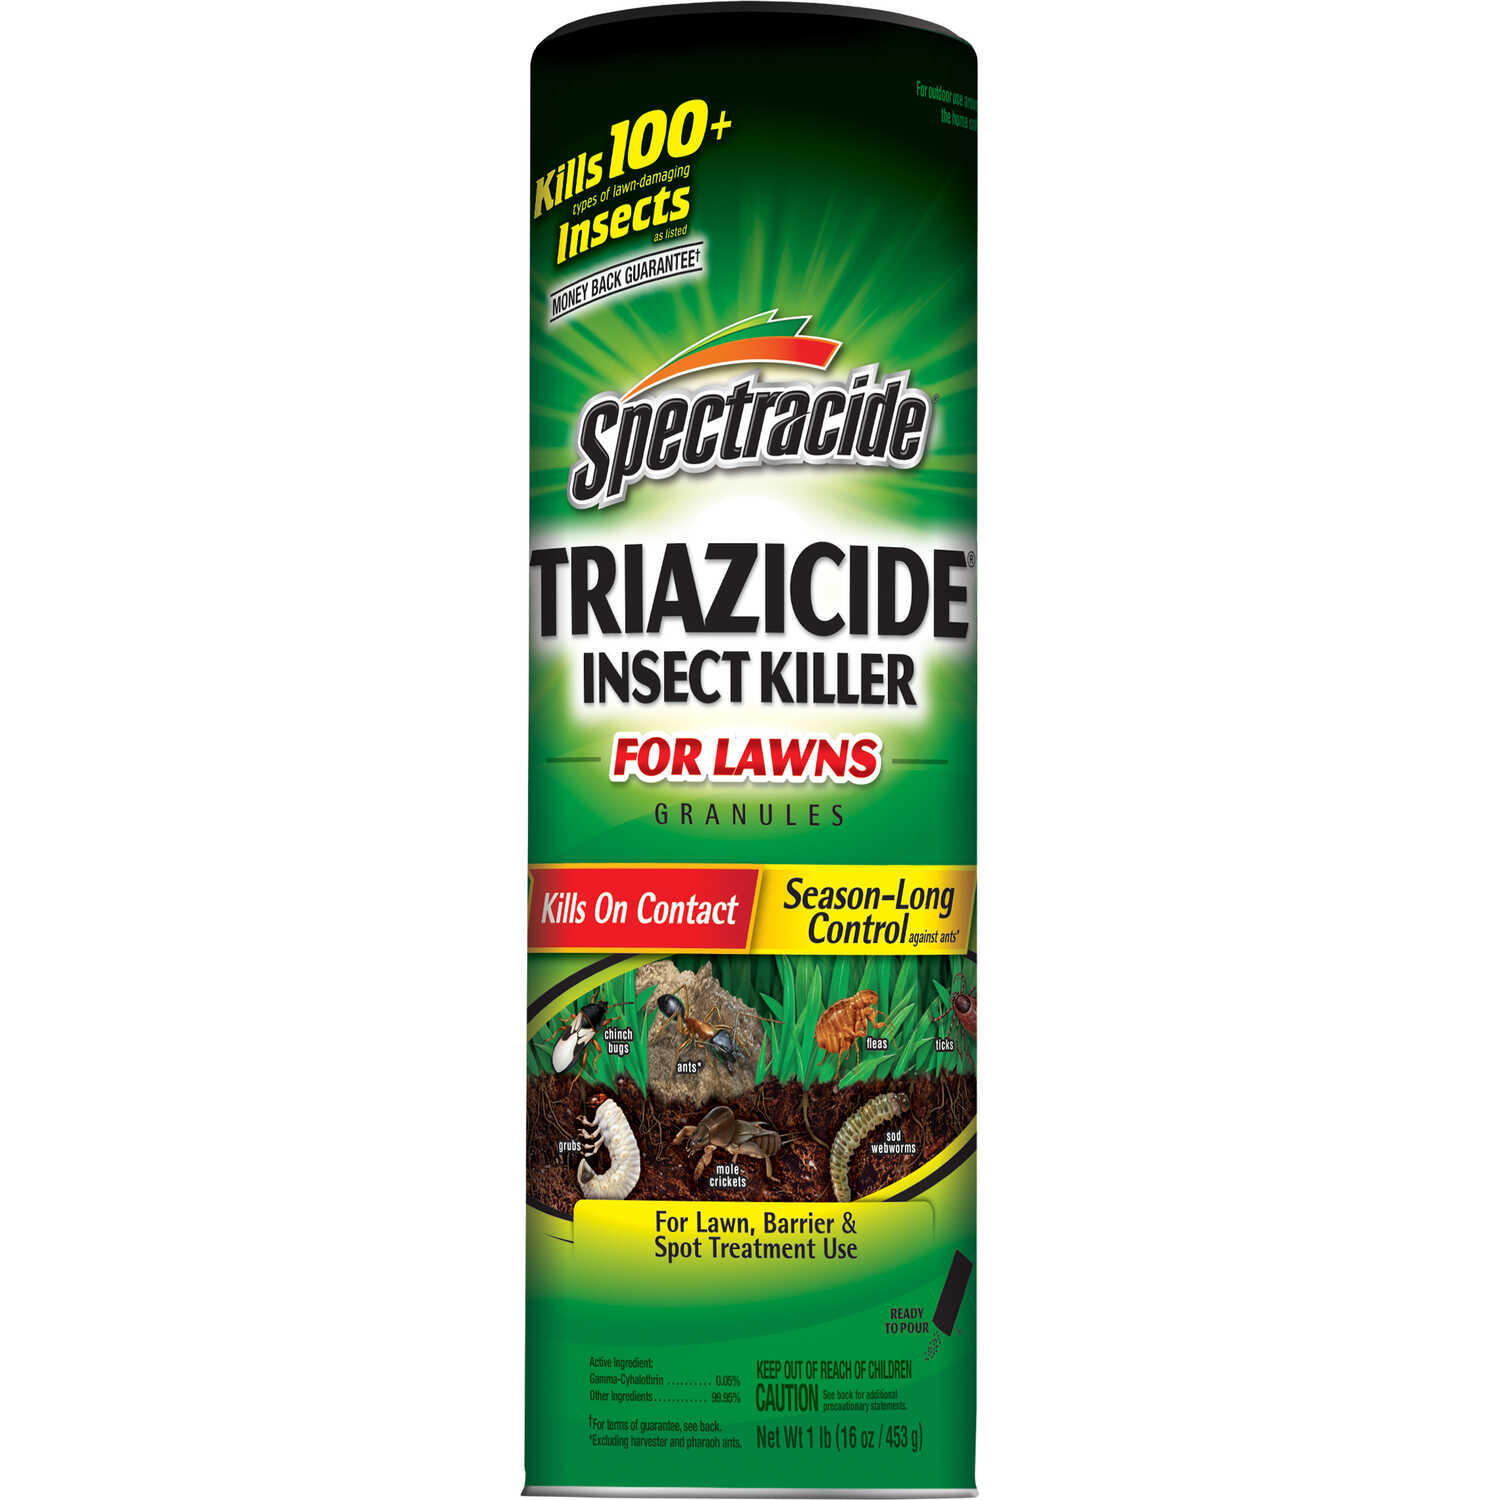 Spectracide  Triazicide for Lawns  Insect Killer  1 lb.